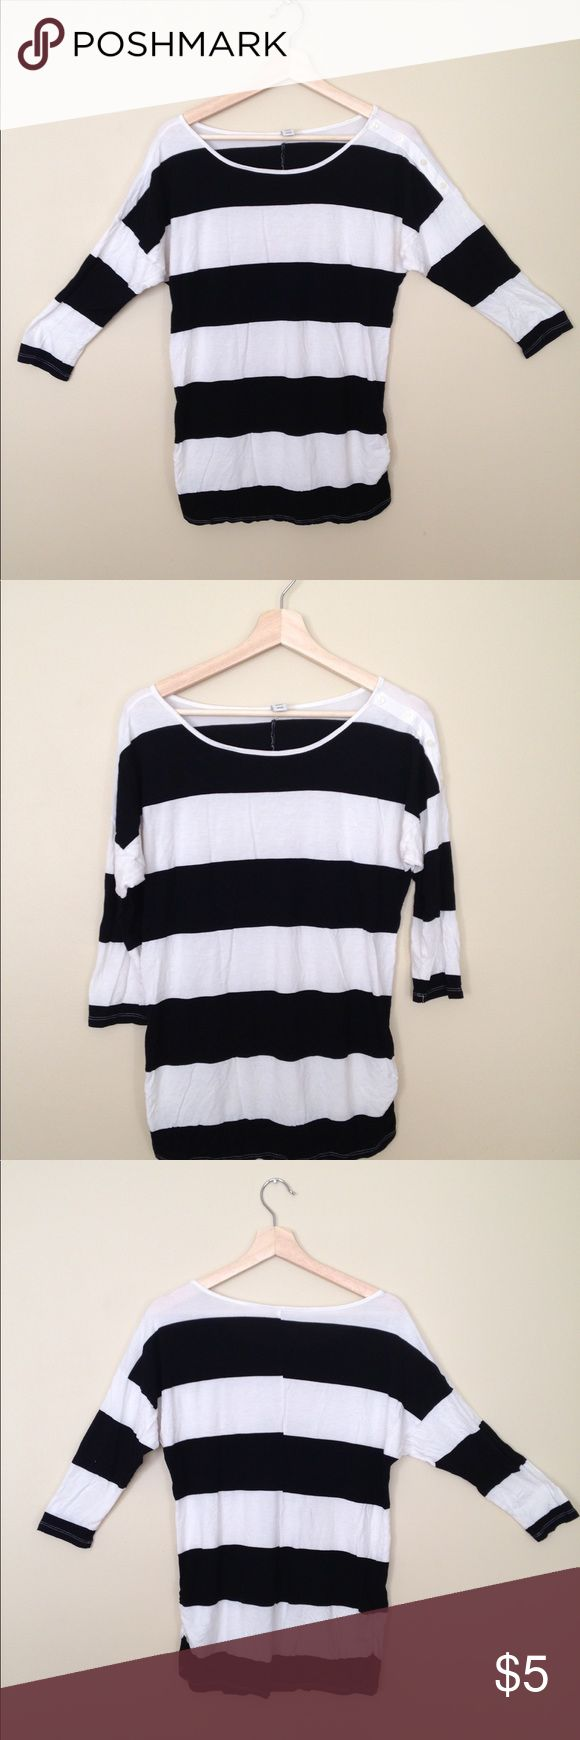 Old Navy Black White Stripe 3/4 Sleeve Shirt Med Old Navy Black White Stripe 3/4 Sleeve shirt black and white in great condition. Size Medium. Tag says MATERNITY but can be for everyday wear by anyone - nothing MATERNITY about it. Maybe just stretchy? Has buttons on a Sleeve for detail. Great with jeans or black or neutral trousers! Very lightly worn. Old Navy Tops Tees - Long Sleeve